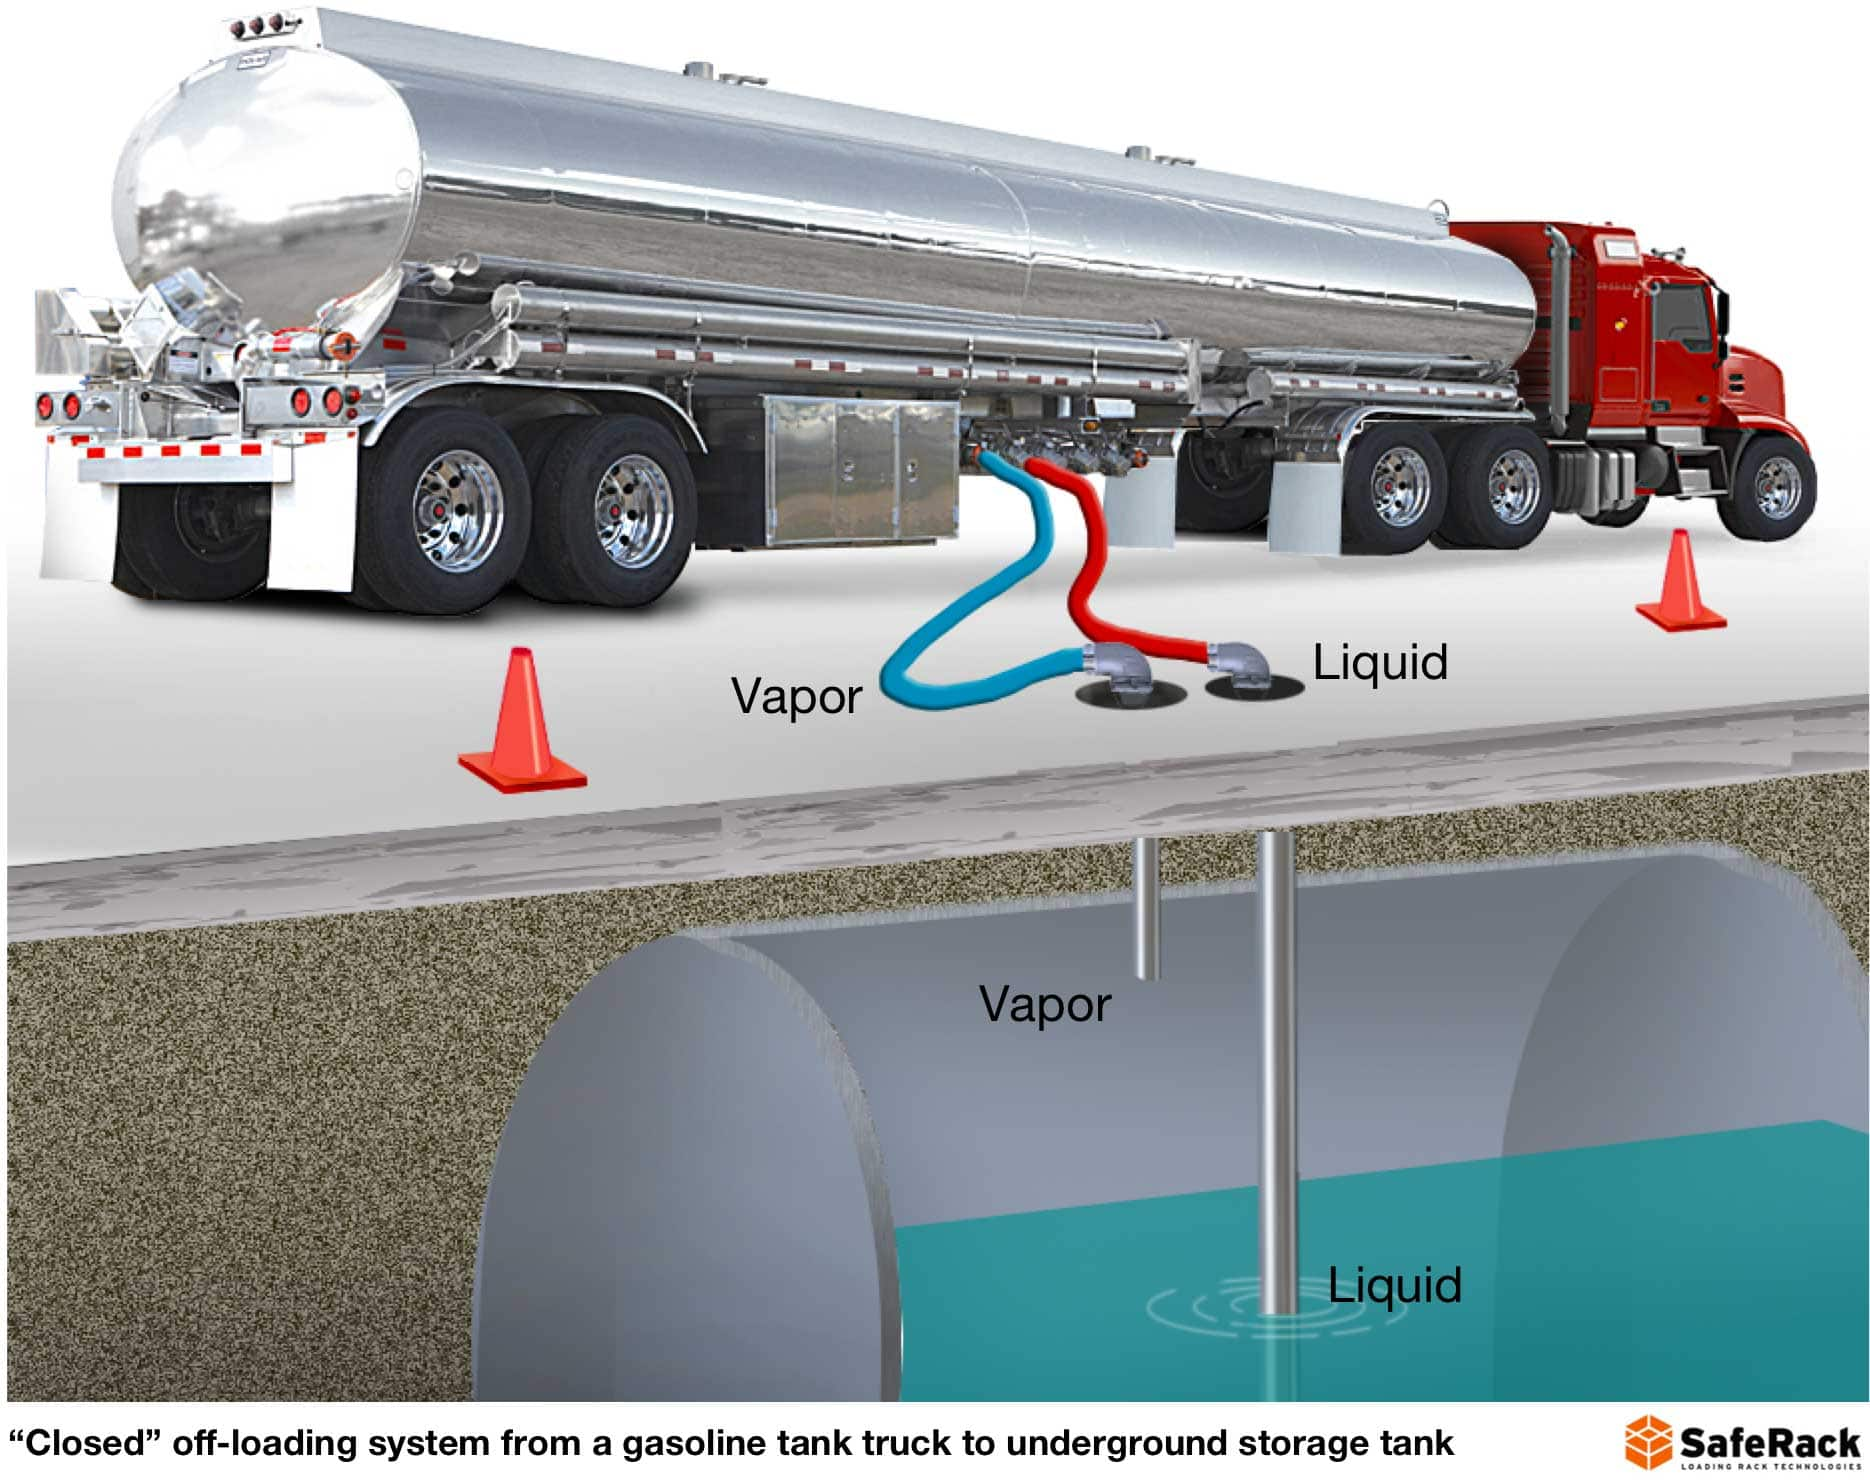 Connecting underground storage tank with closed off-loading system